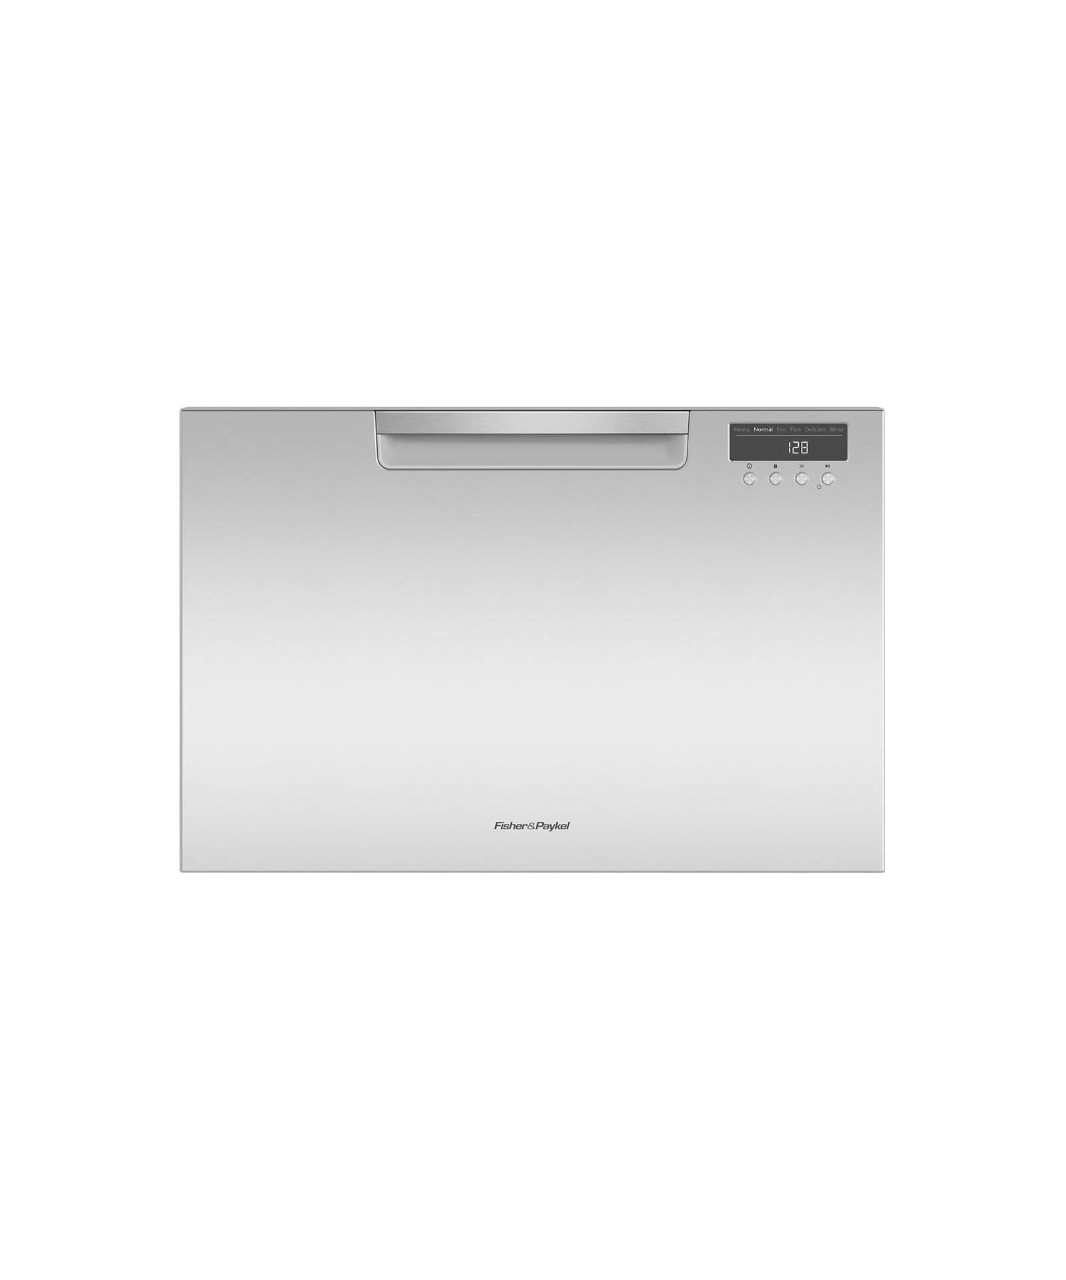 DISPLAY MODEL.  Single DishDrawer dishwasher